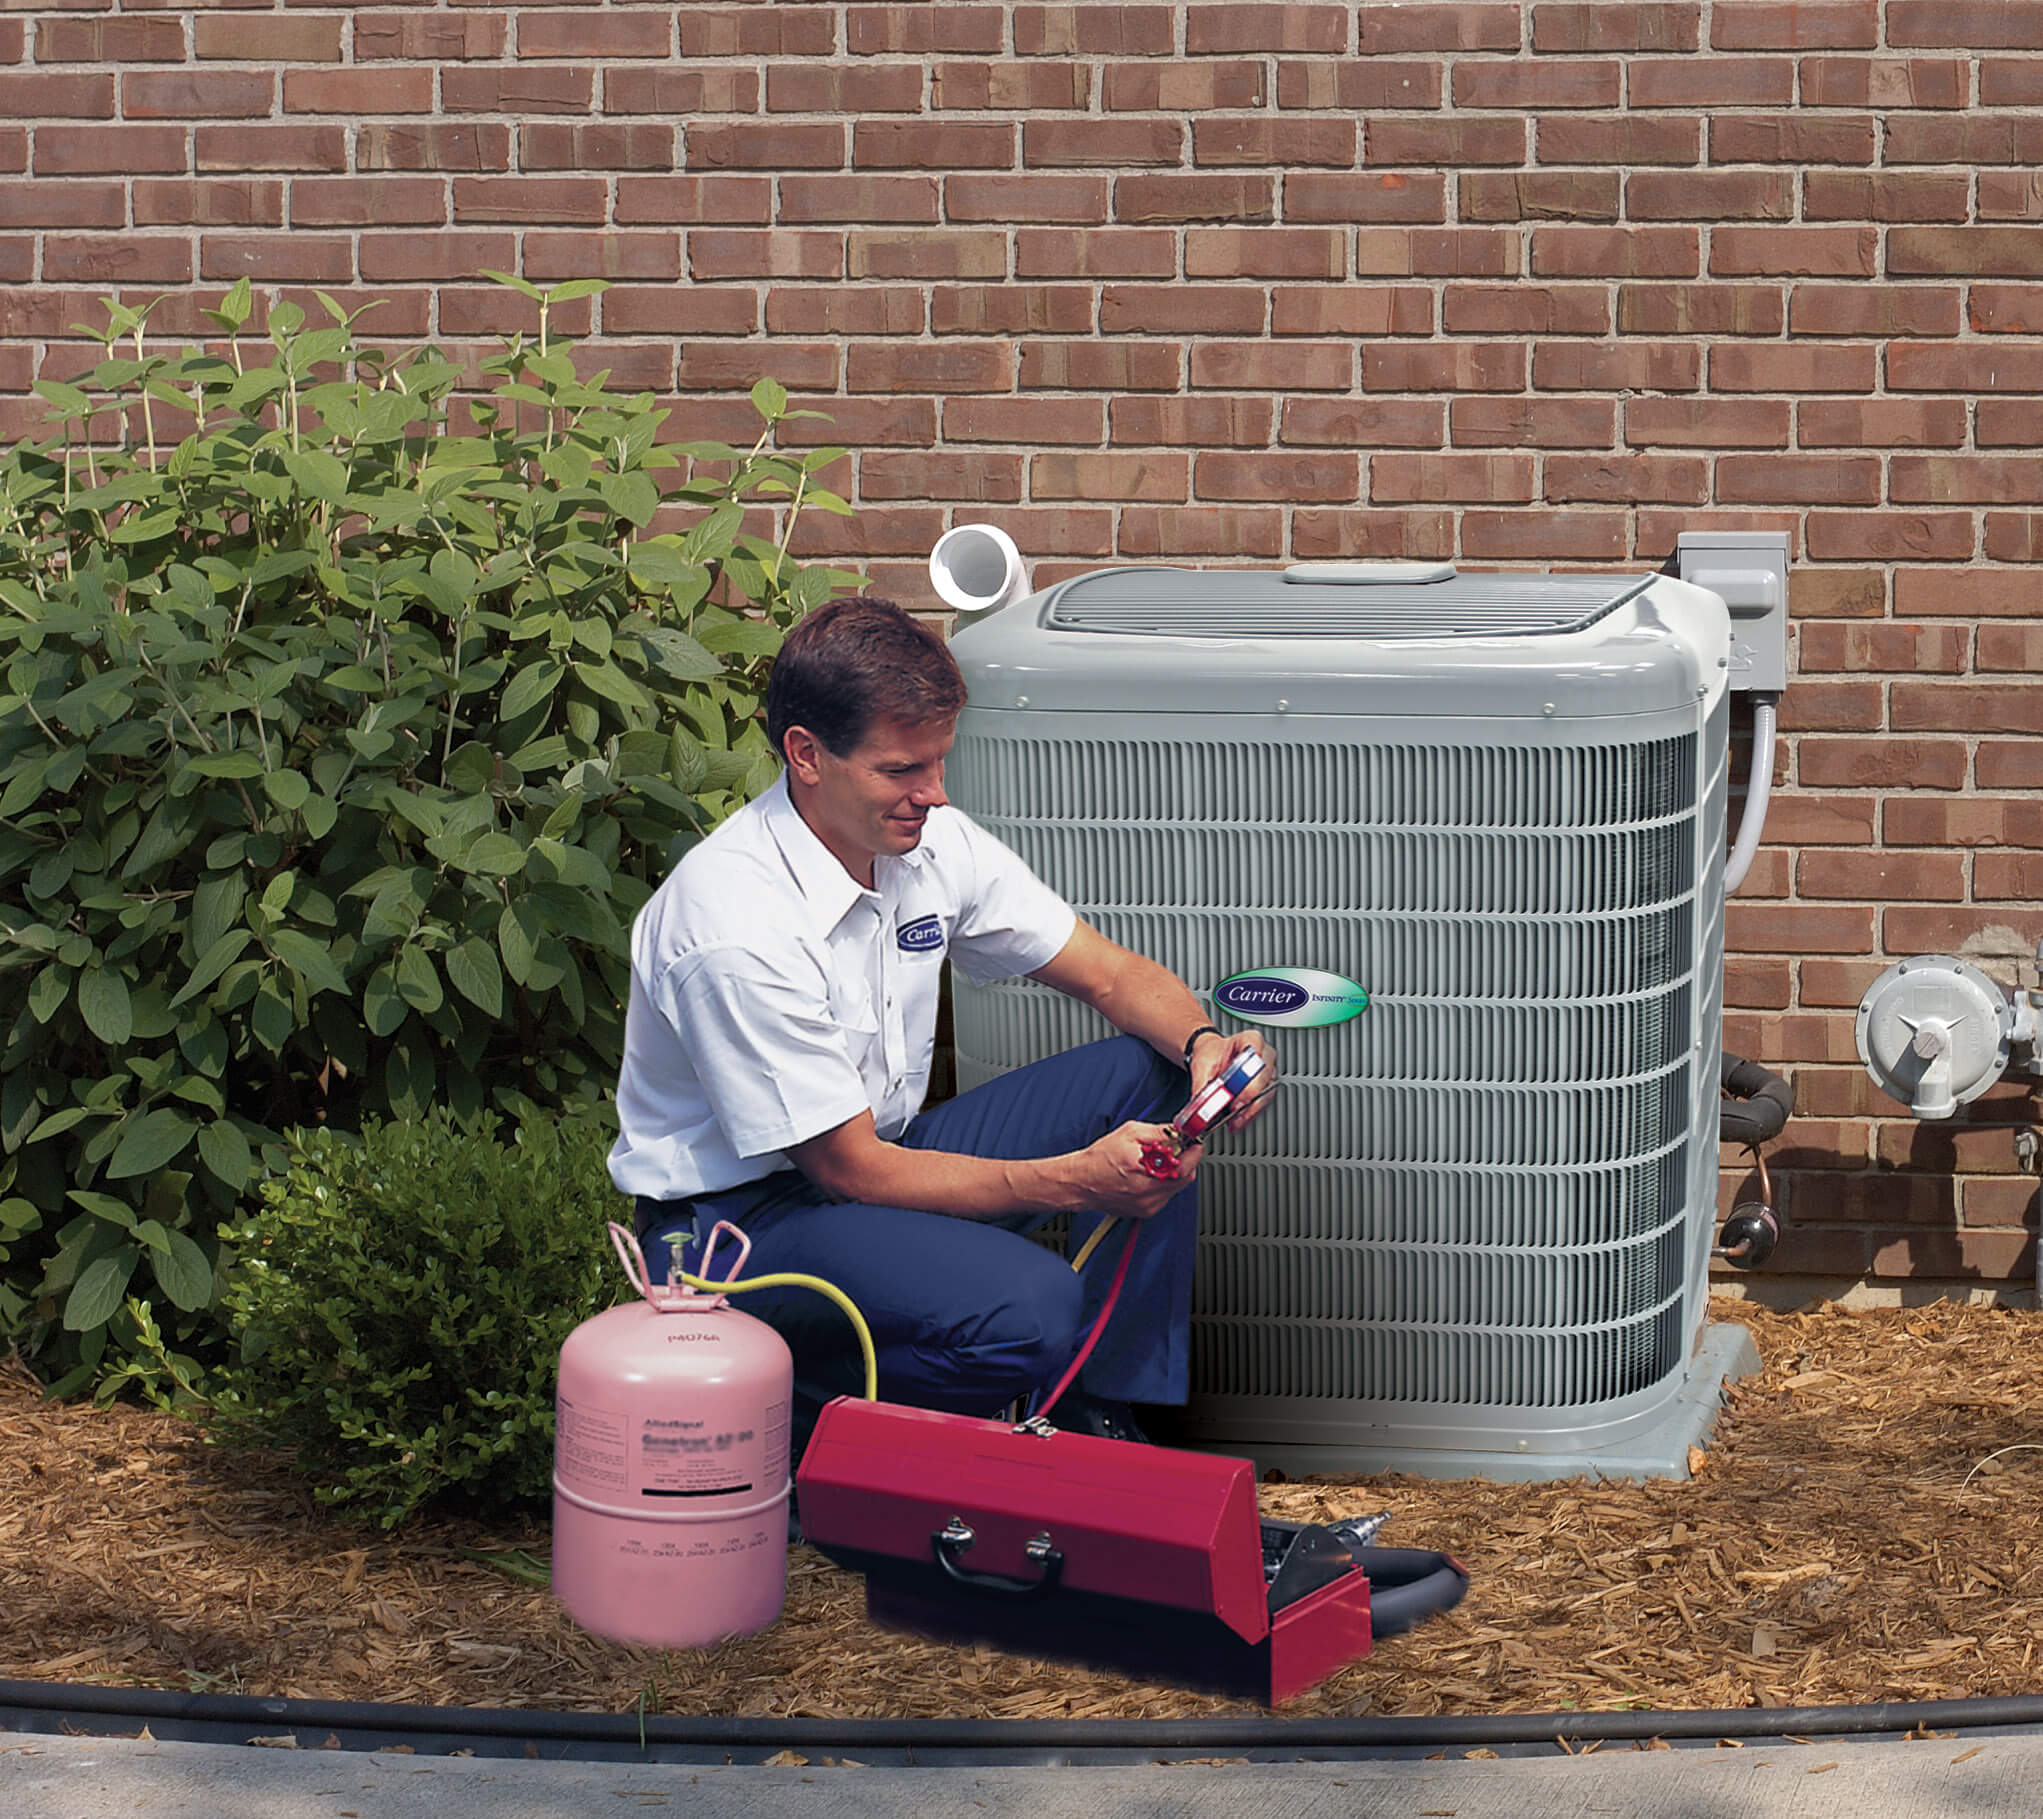 bc express hvac technician working on outdoor unit